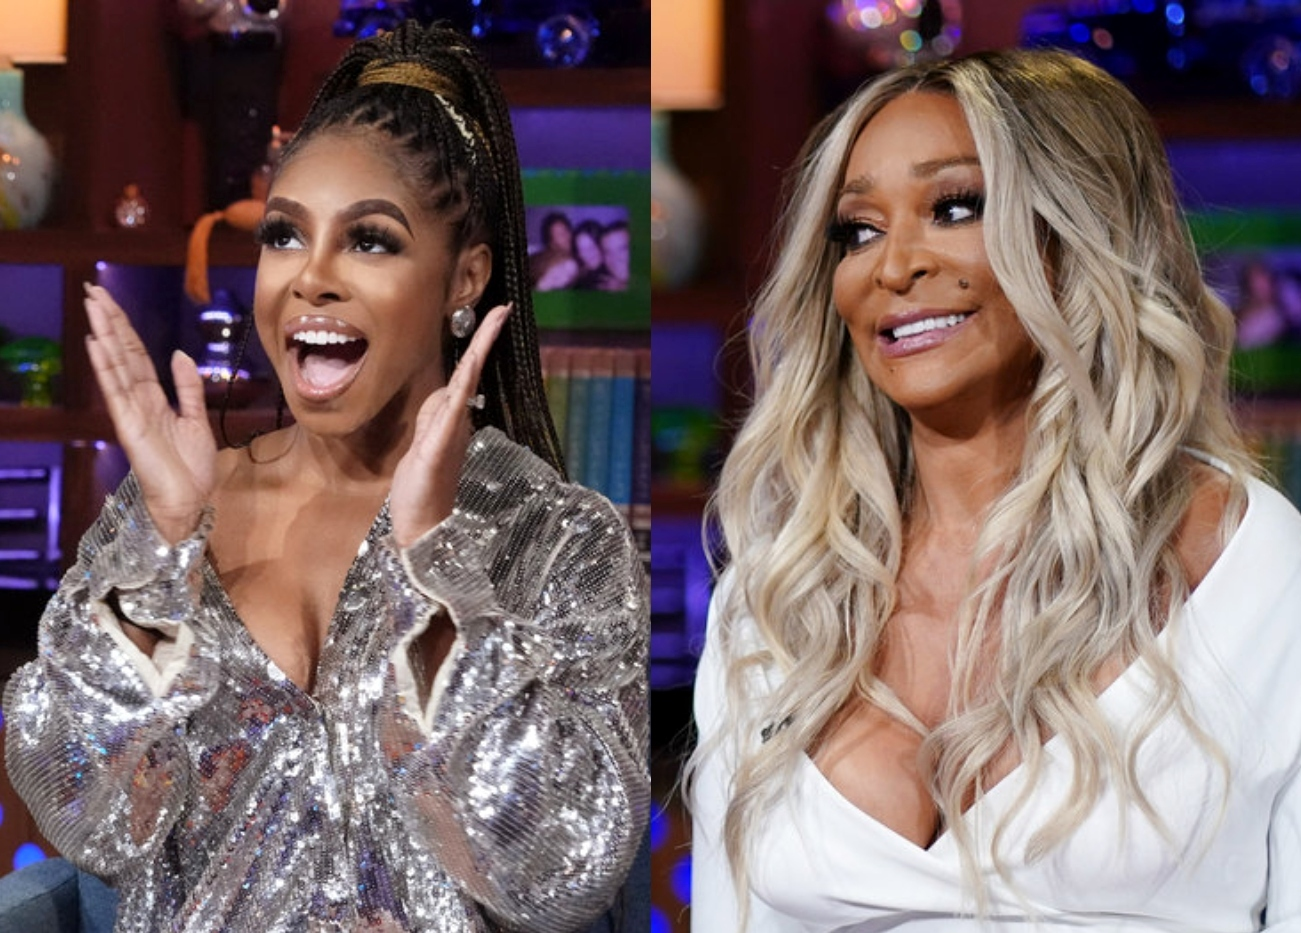 """Candiace Dillard Bassett Claims Karen Huger Tried To Get Her Axed From RHOP And Has No """"Remorse,"""" But Can Their Friendship Be Repaired?"""